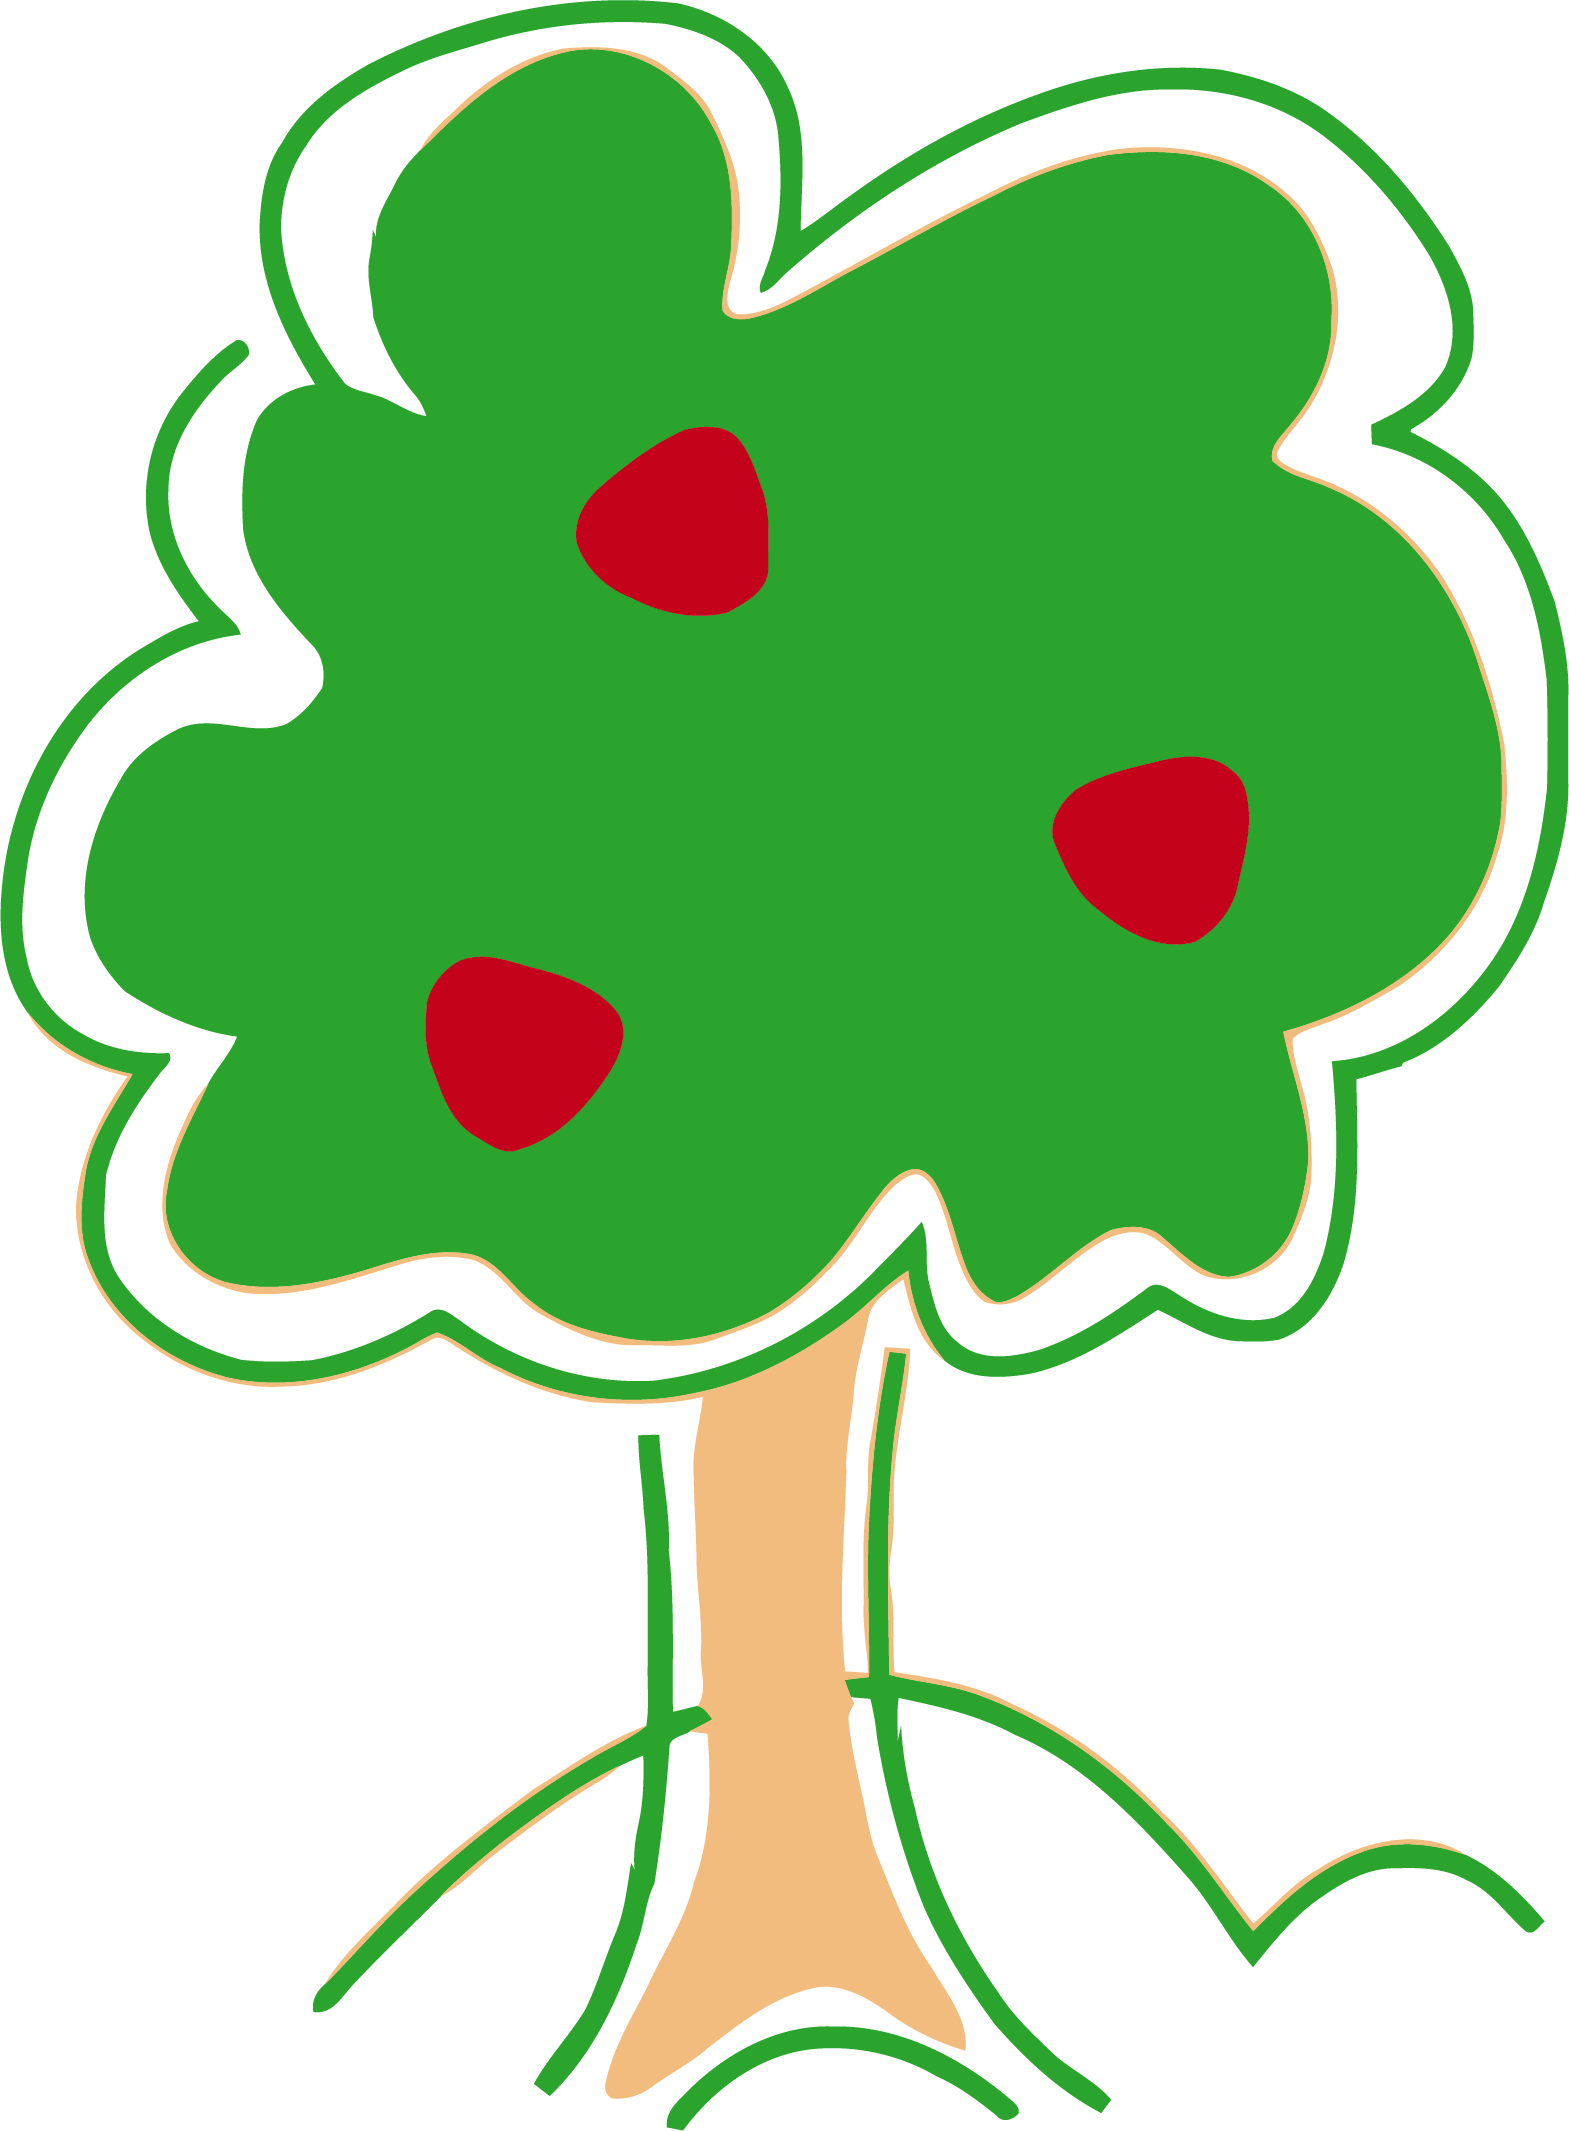 Tree clipart cute graphic free Cute Apple Tree Clipart - Vector And Clip Art Inspiration • graphic free